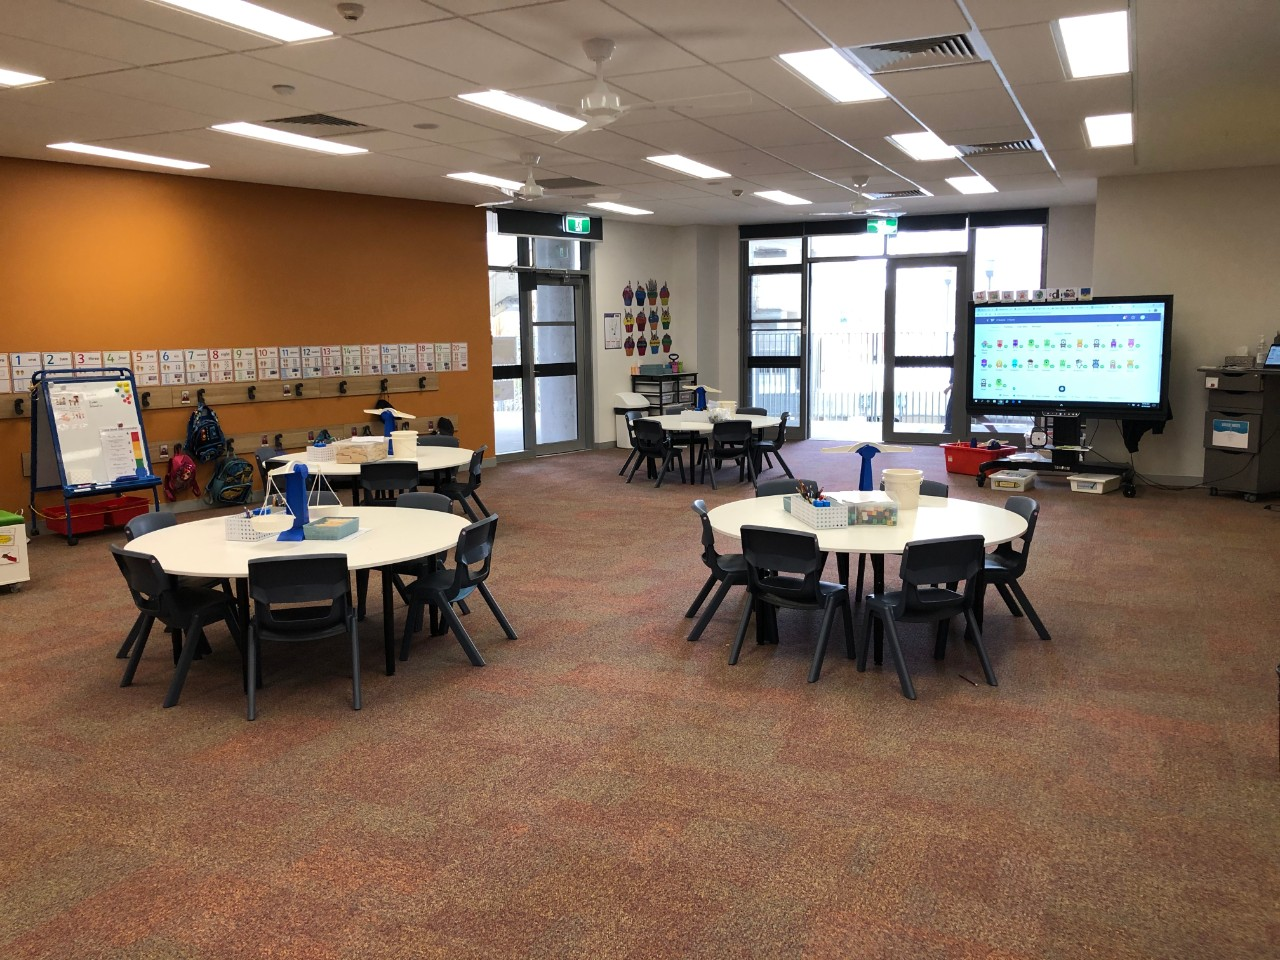 Primary Learning Hubs